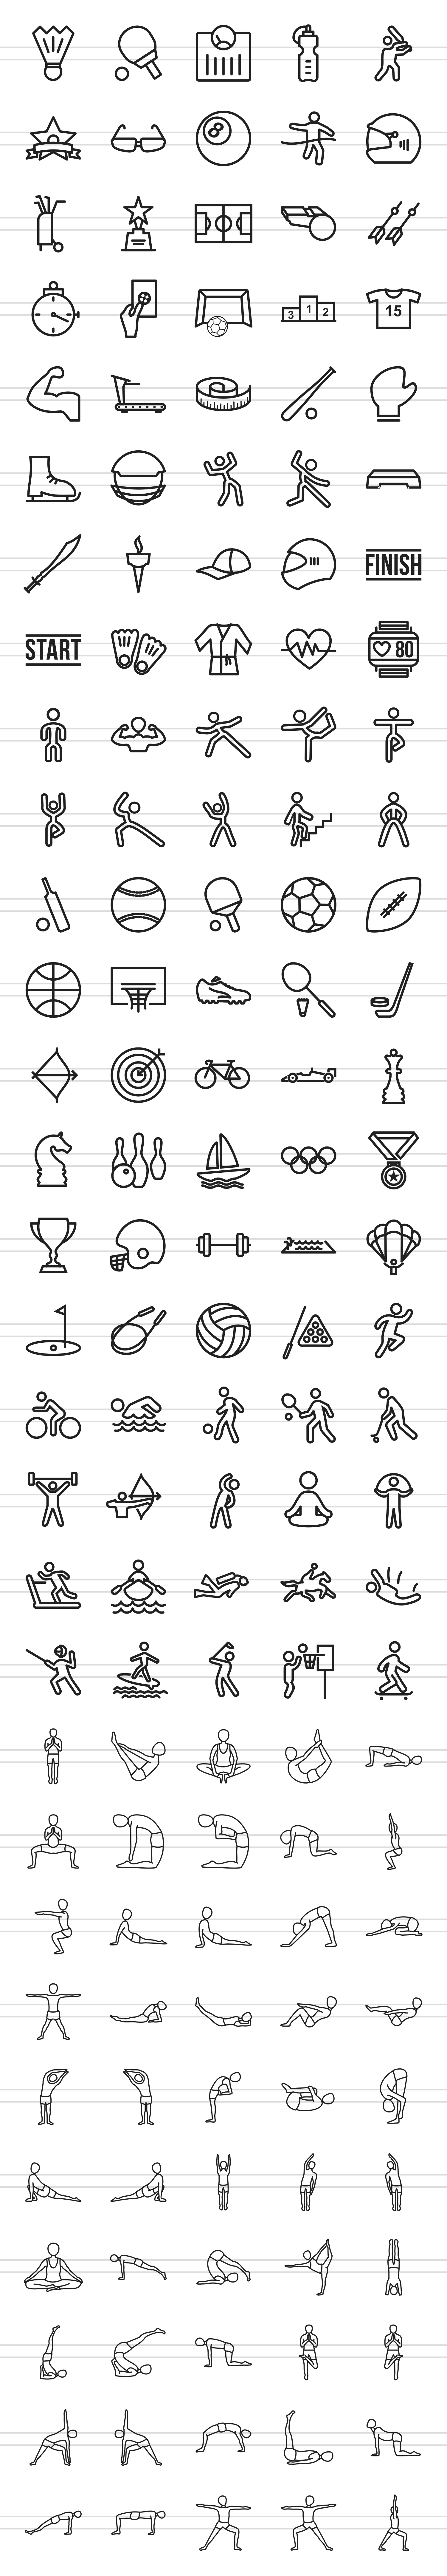 150 Fitness & Sports Line Icons example image 2